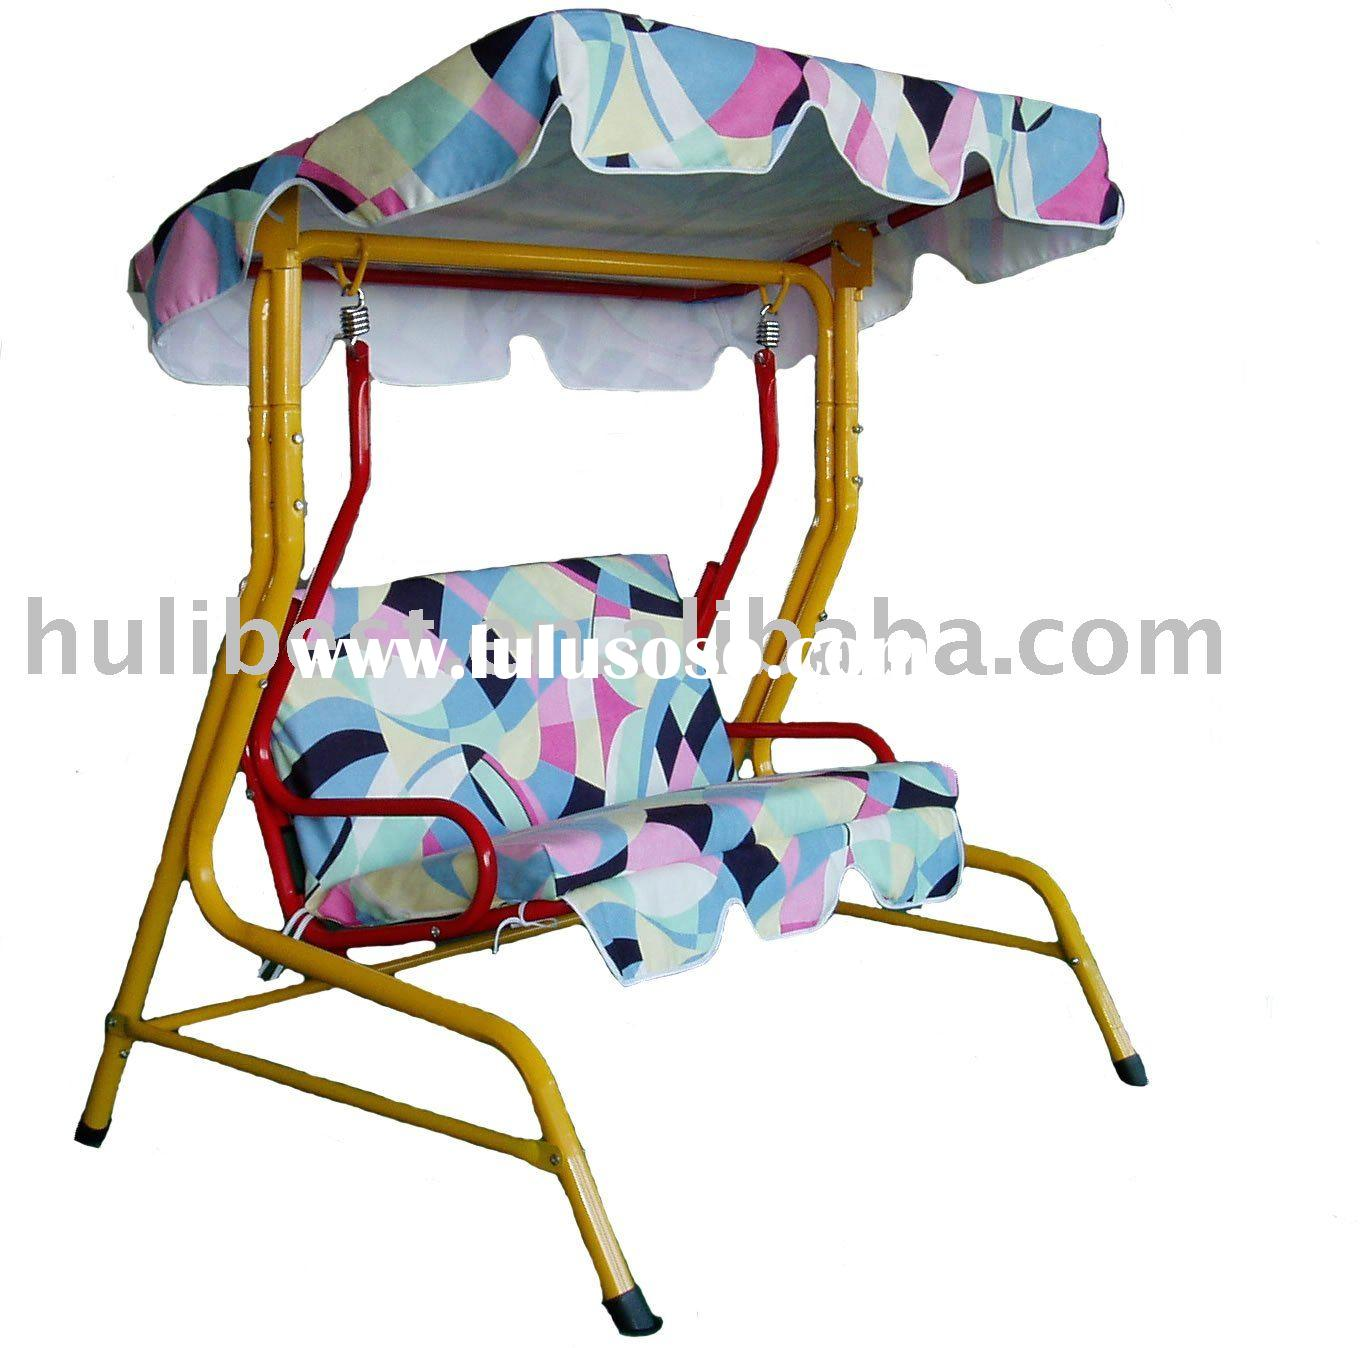 Kids Garden Swing Chair, Kids Garden Swing Chair Manufacturers In  LuLuSoSo.com   Page 1